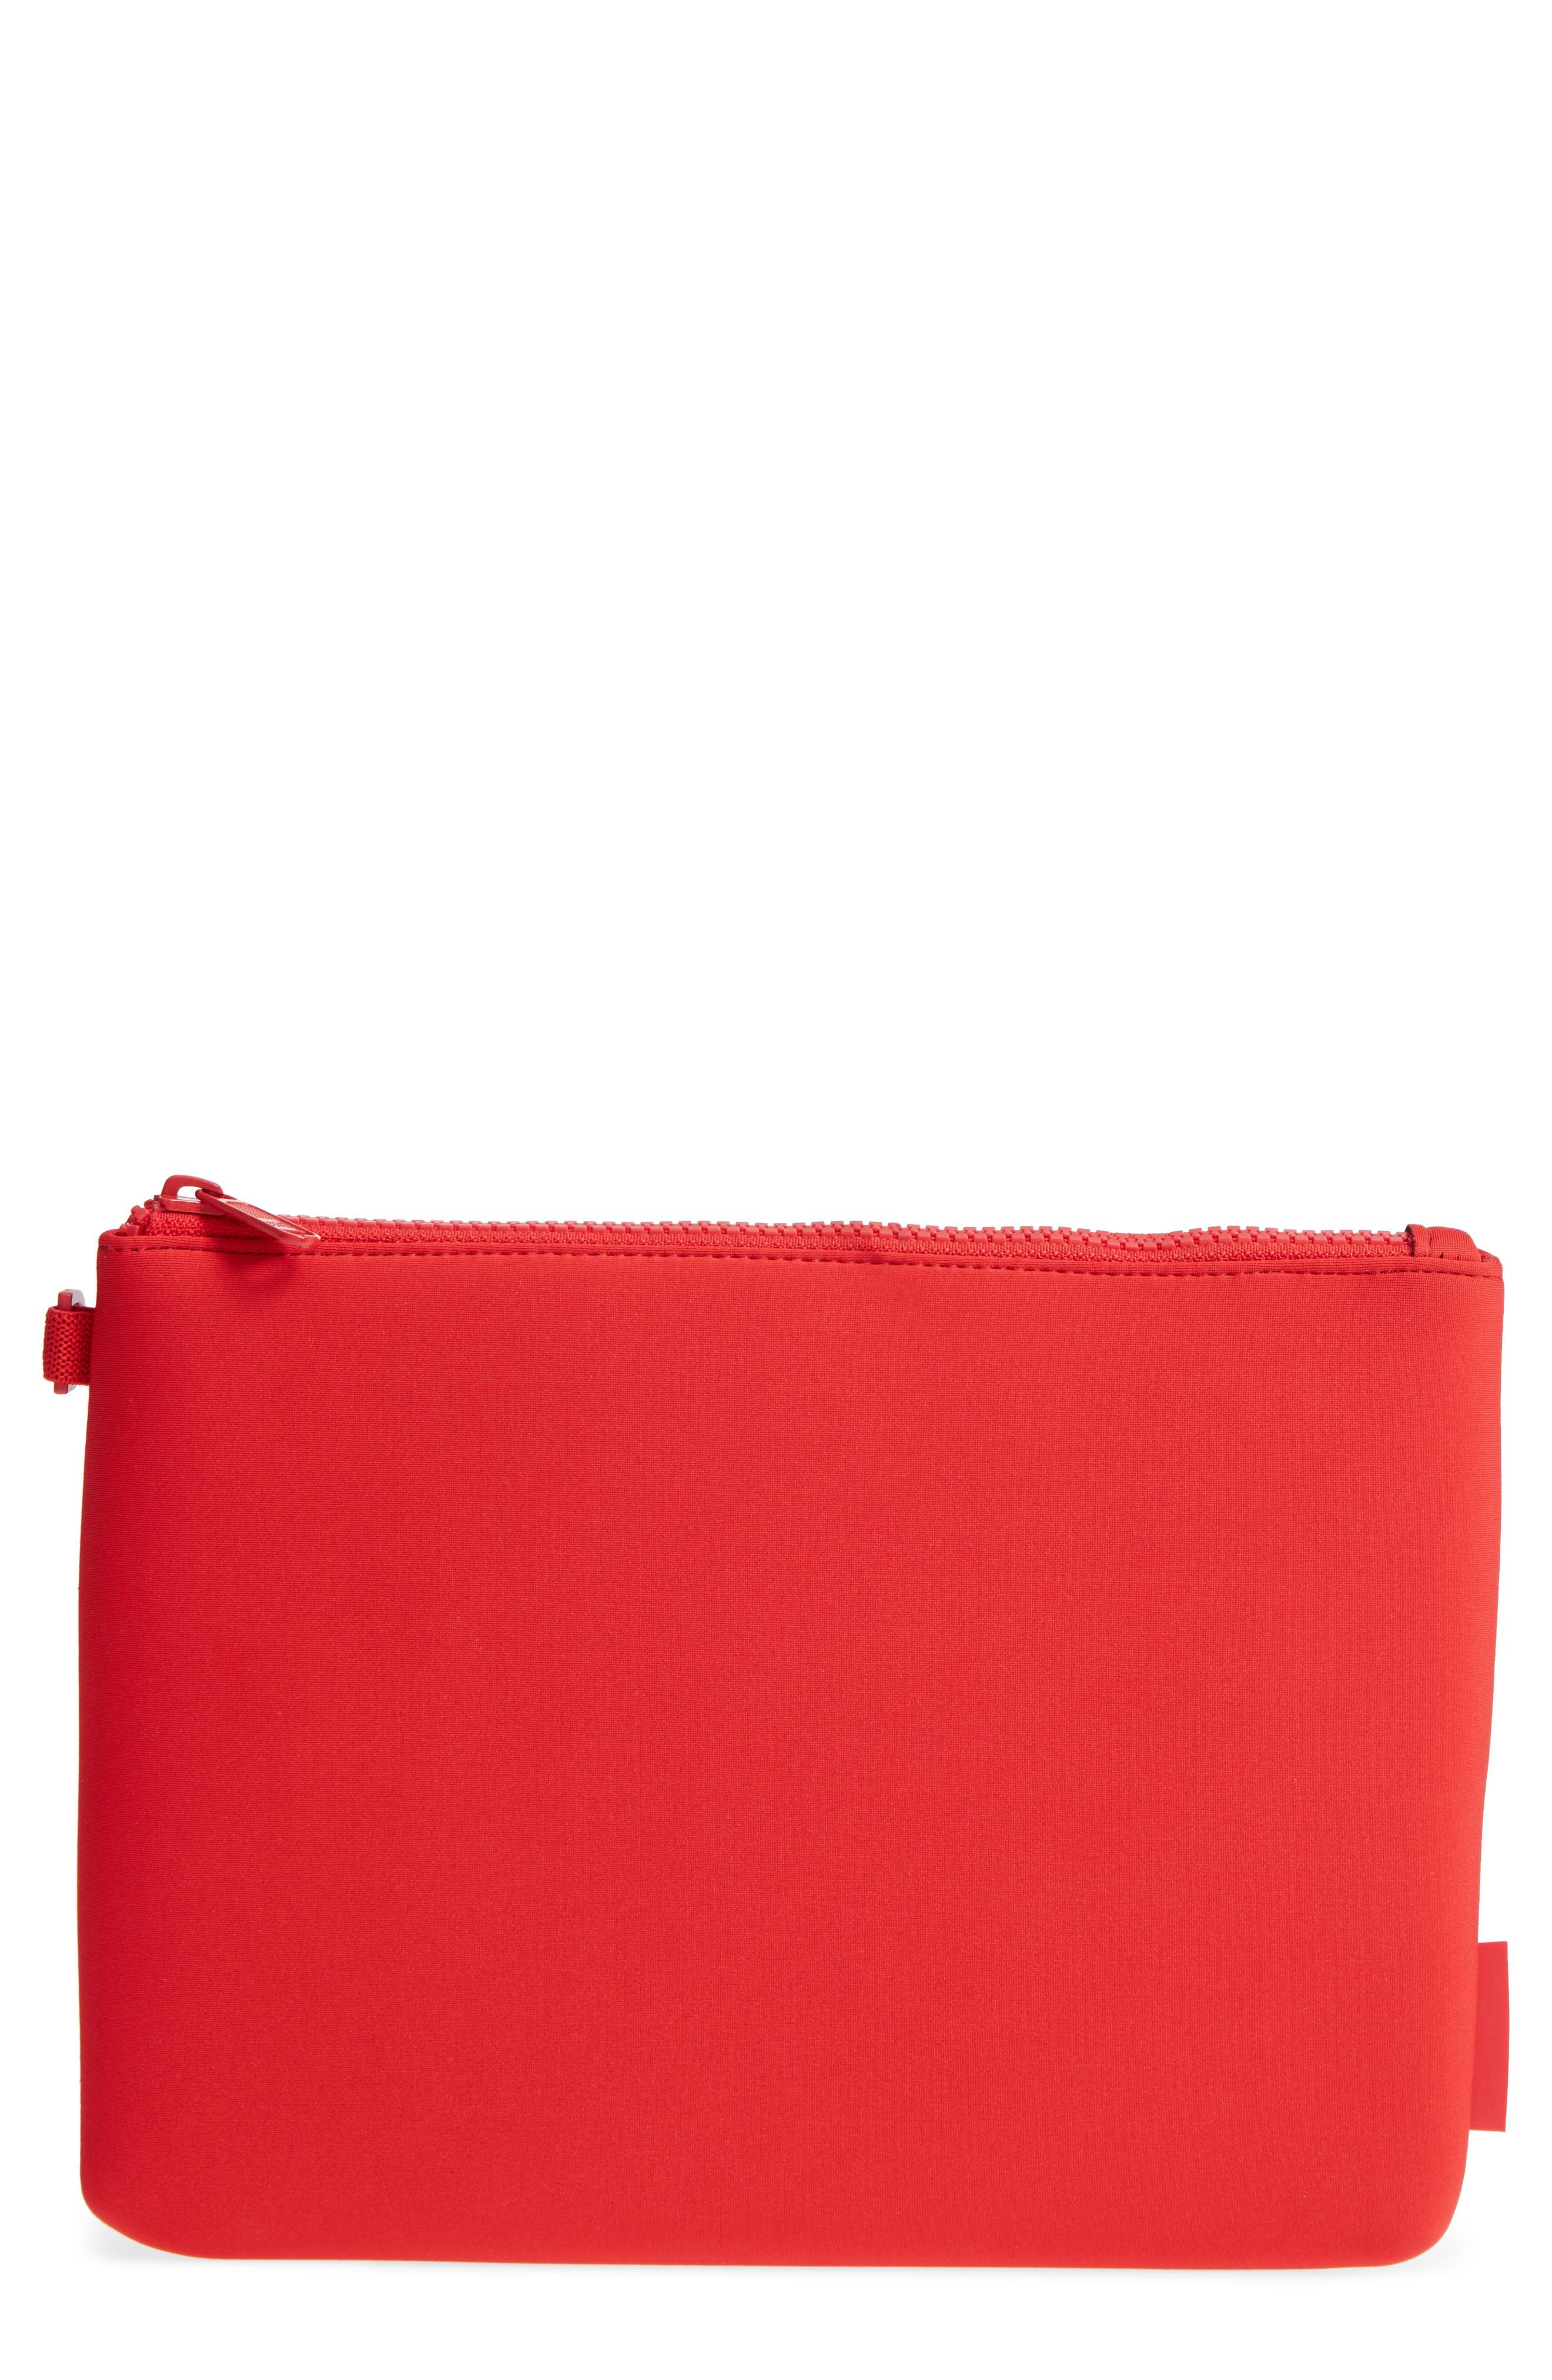 Dagne Dover Scout Large Zip Top Pouch - Red In Poppy